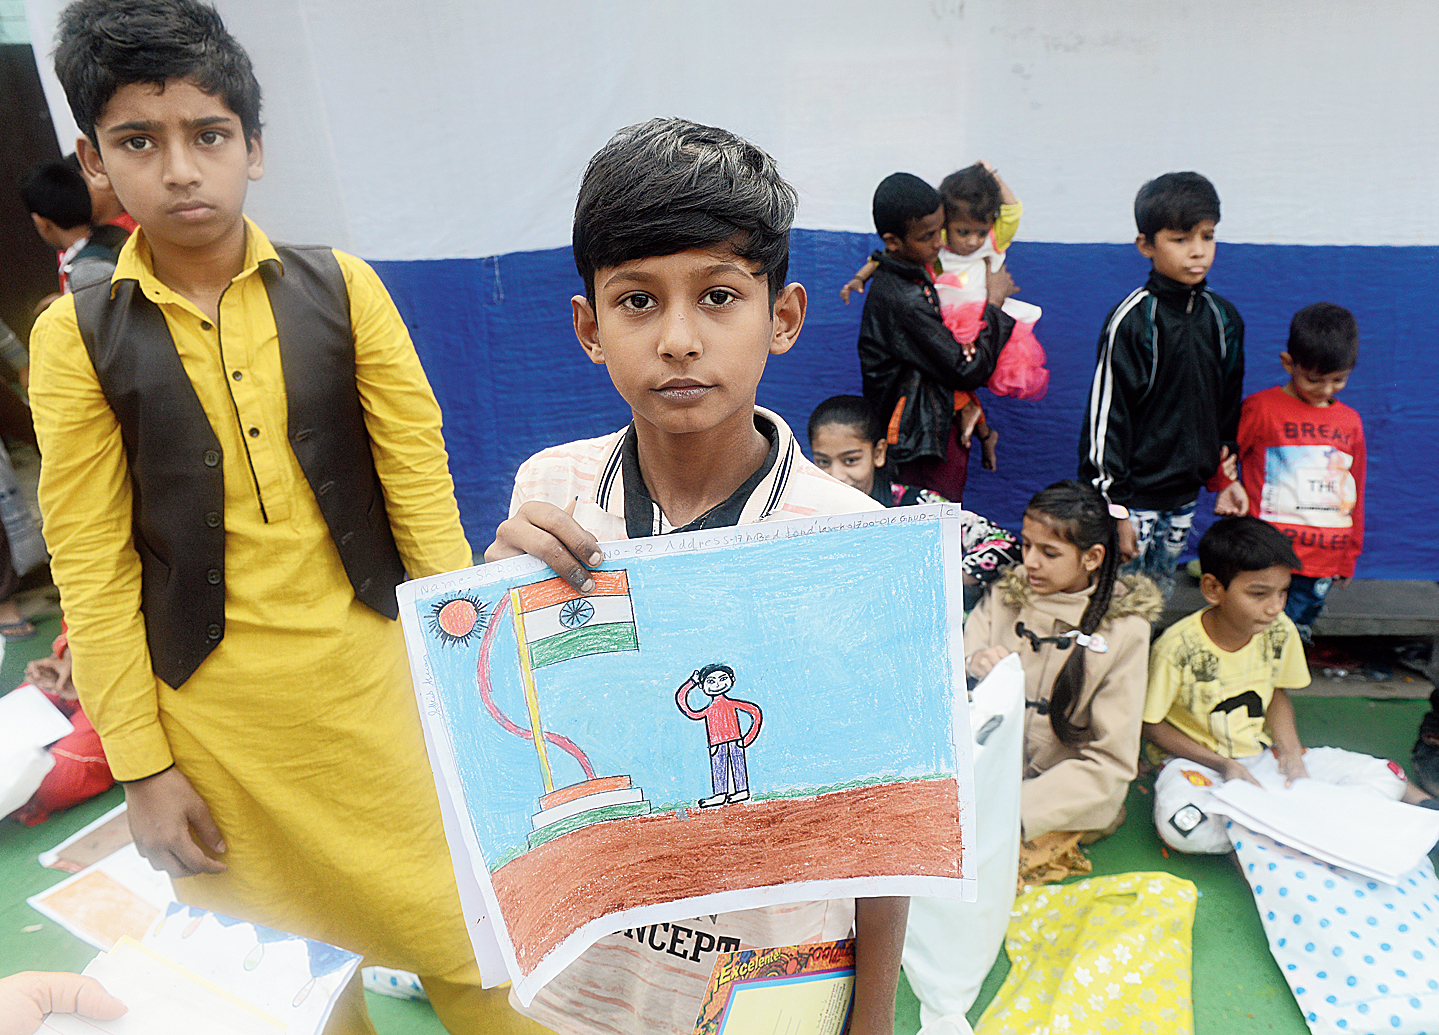 Over 1,000 children participated in the drawing competition on New Year's Day in the neighbourhood with a significant Muslim presence, where conversations at home and outside of late have been mostly about citizenship rights.